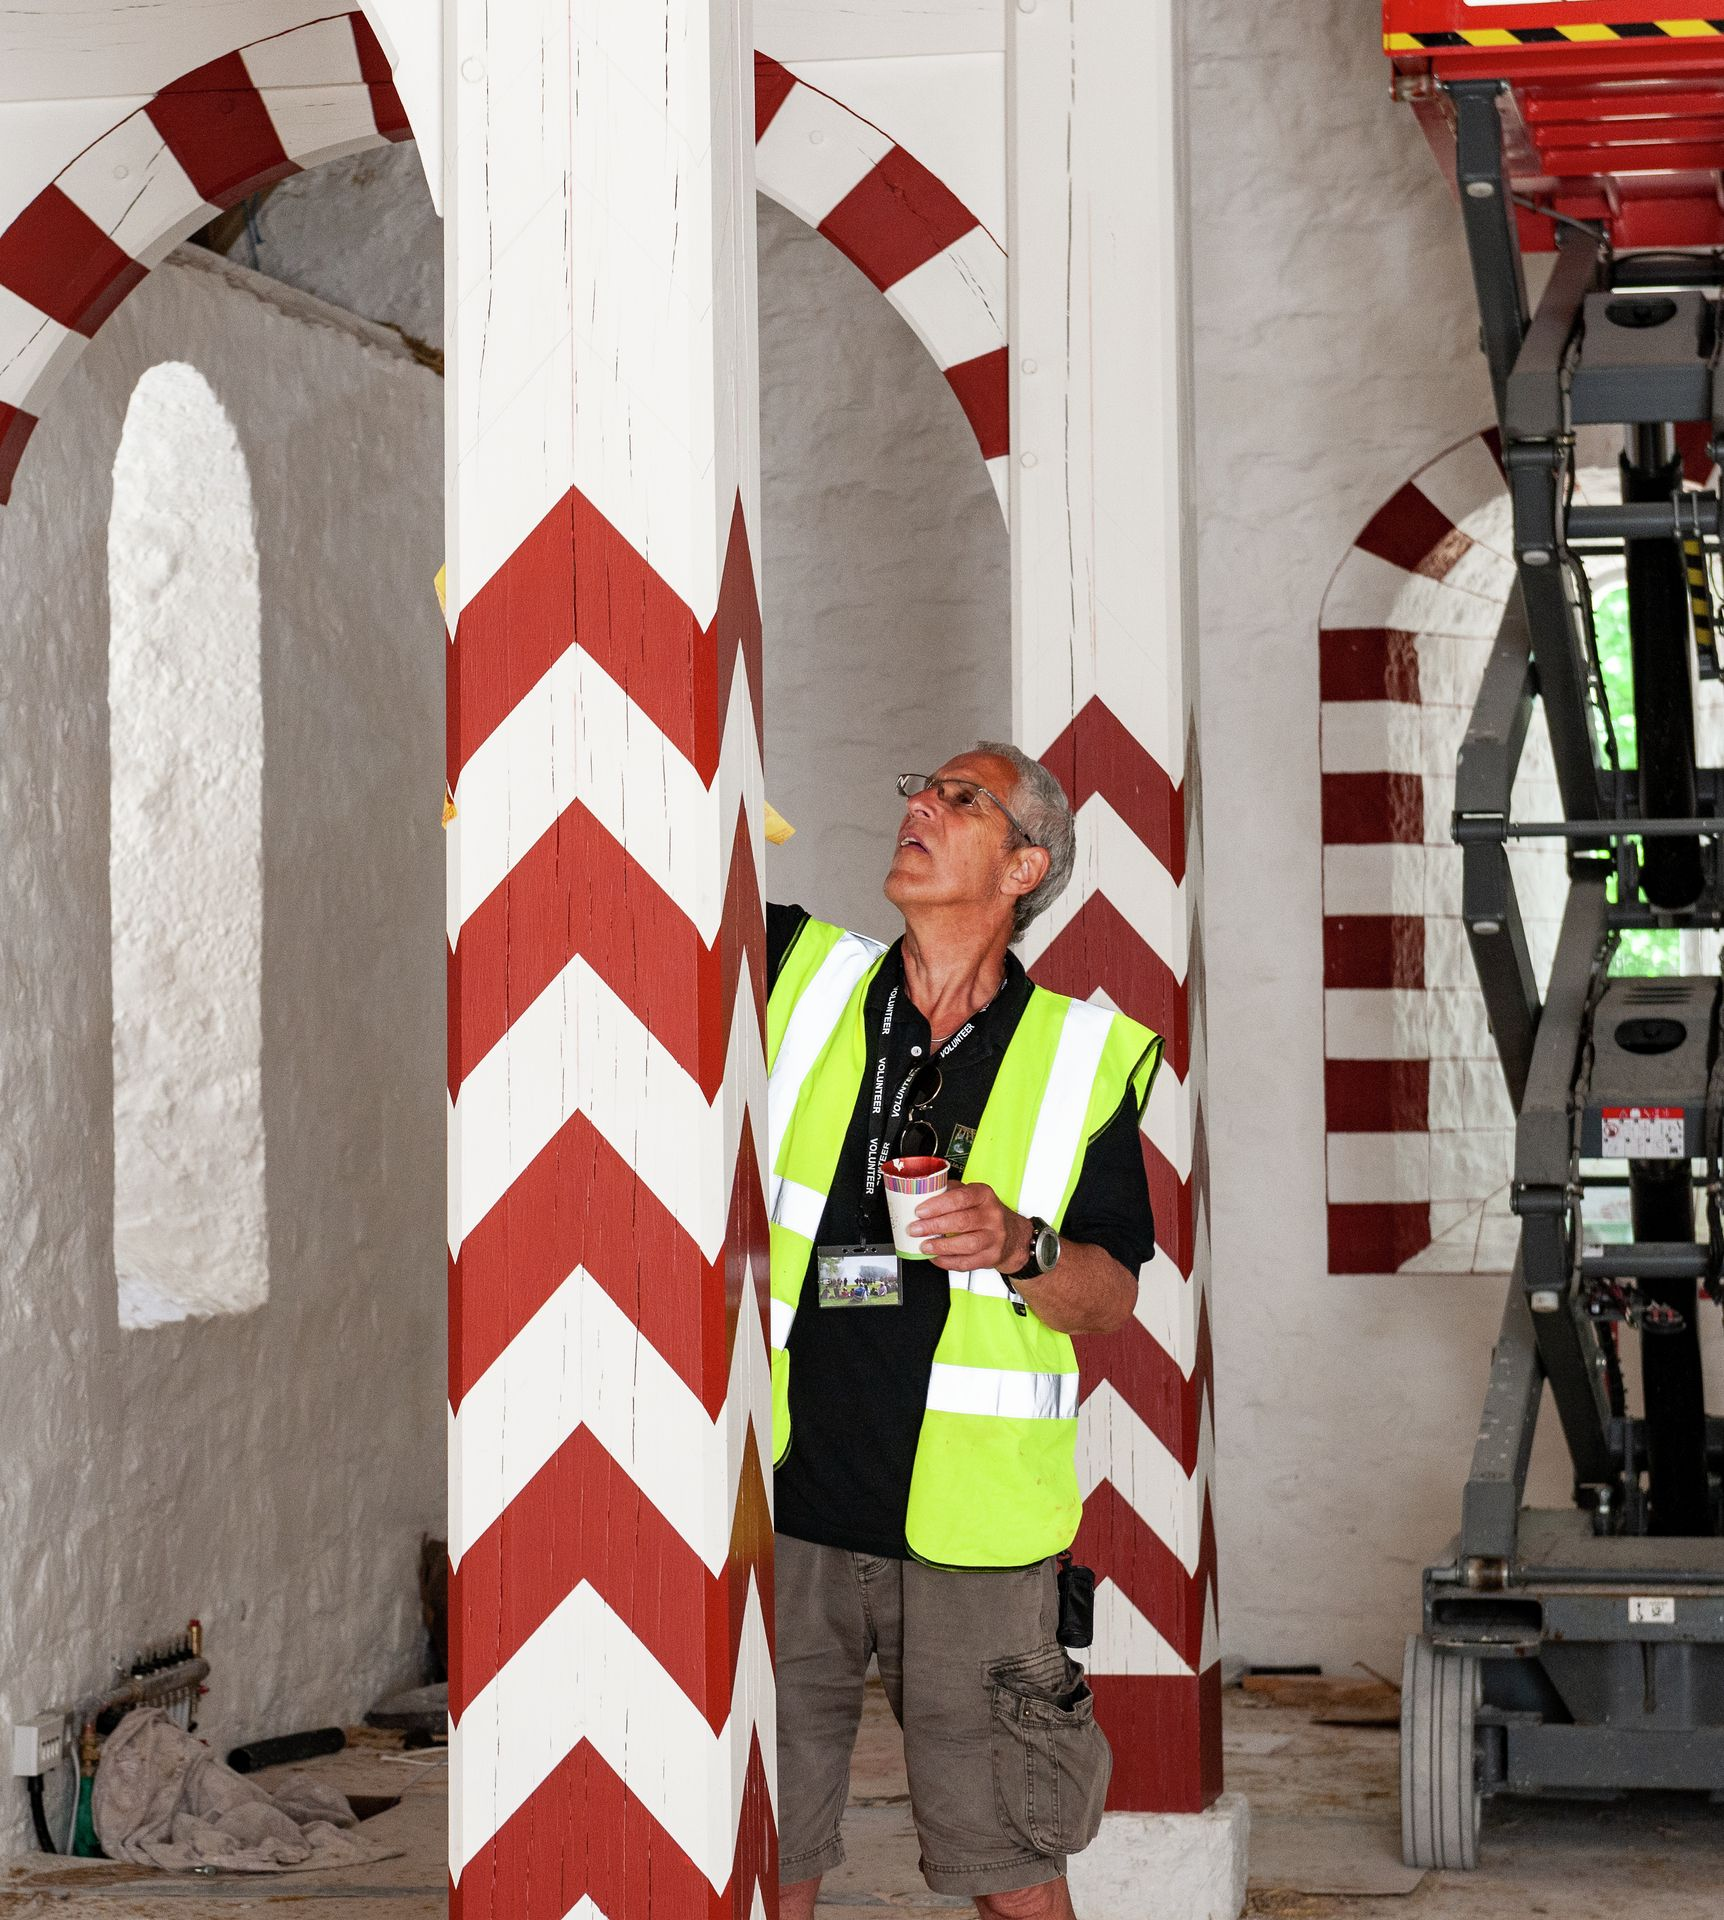 Volunteer decorating wooden posts by painting large red chevrons onto a white background.